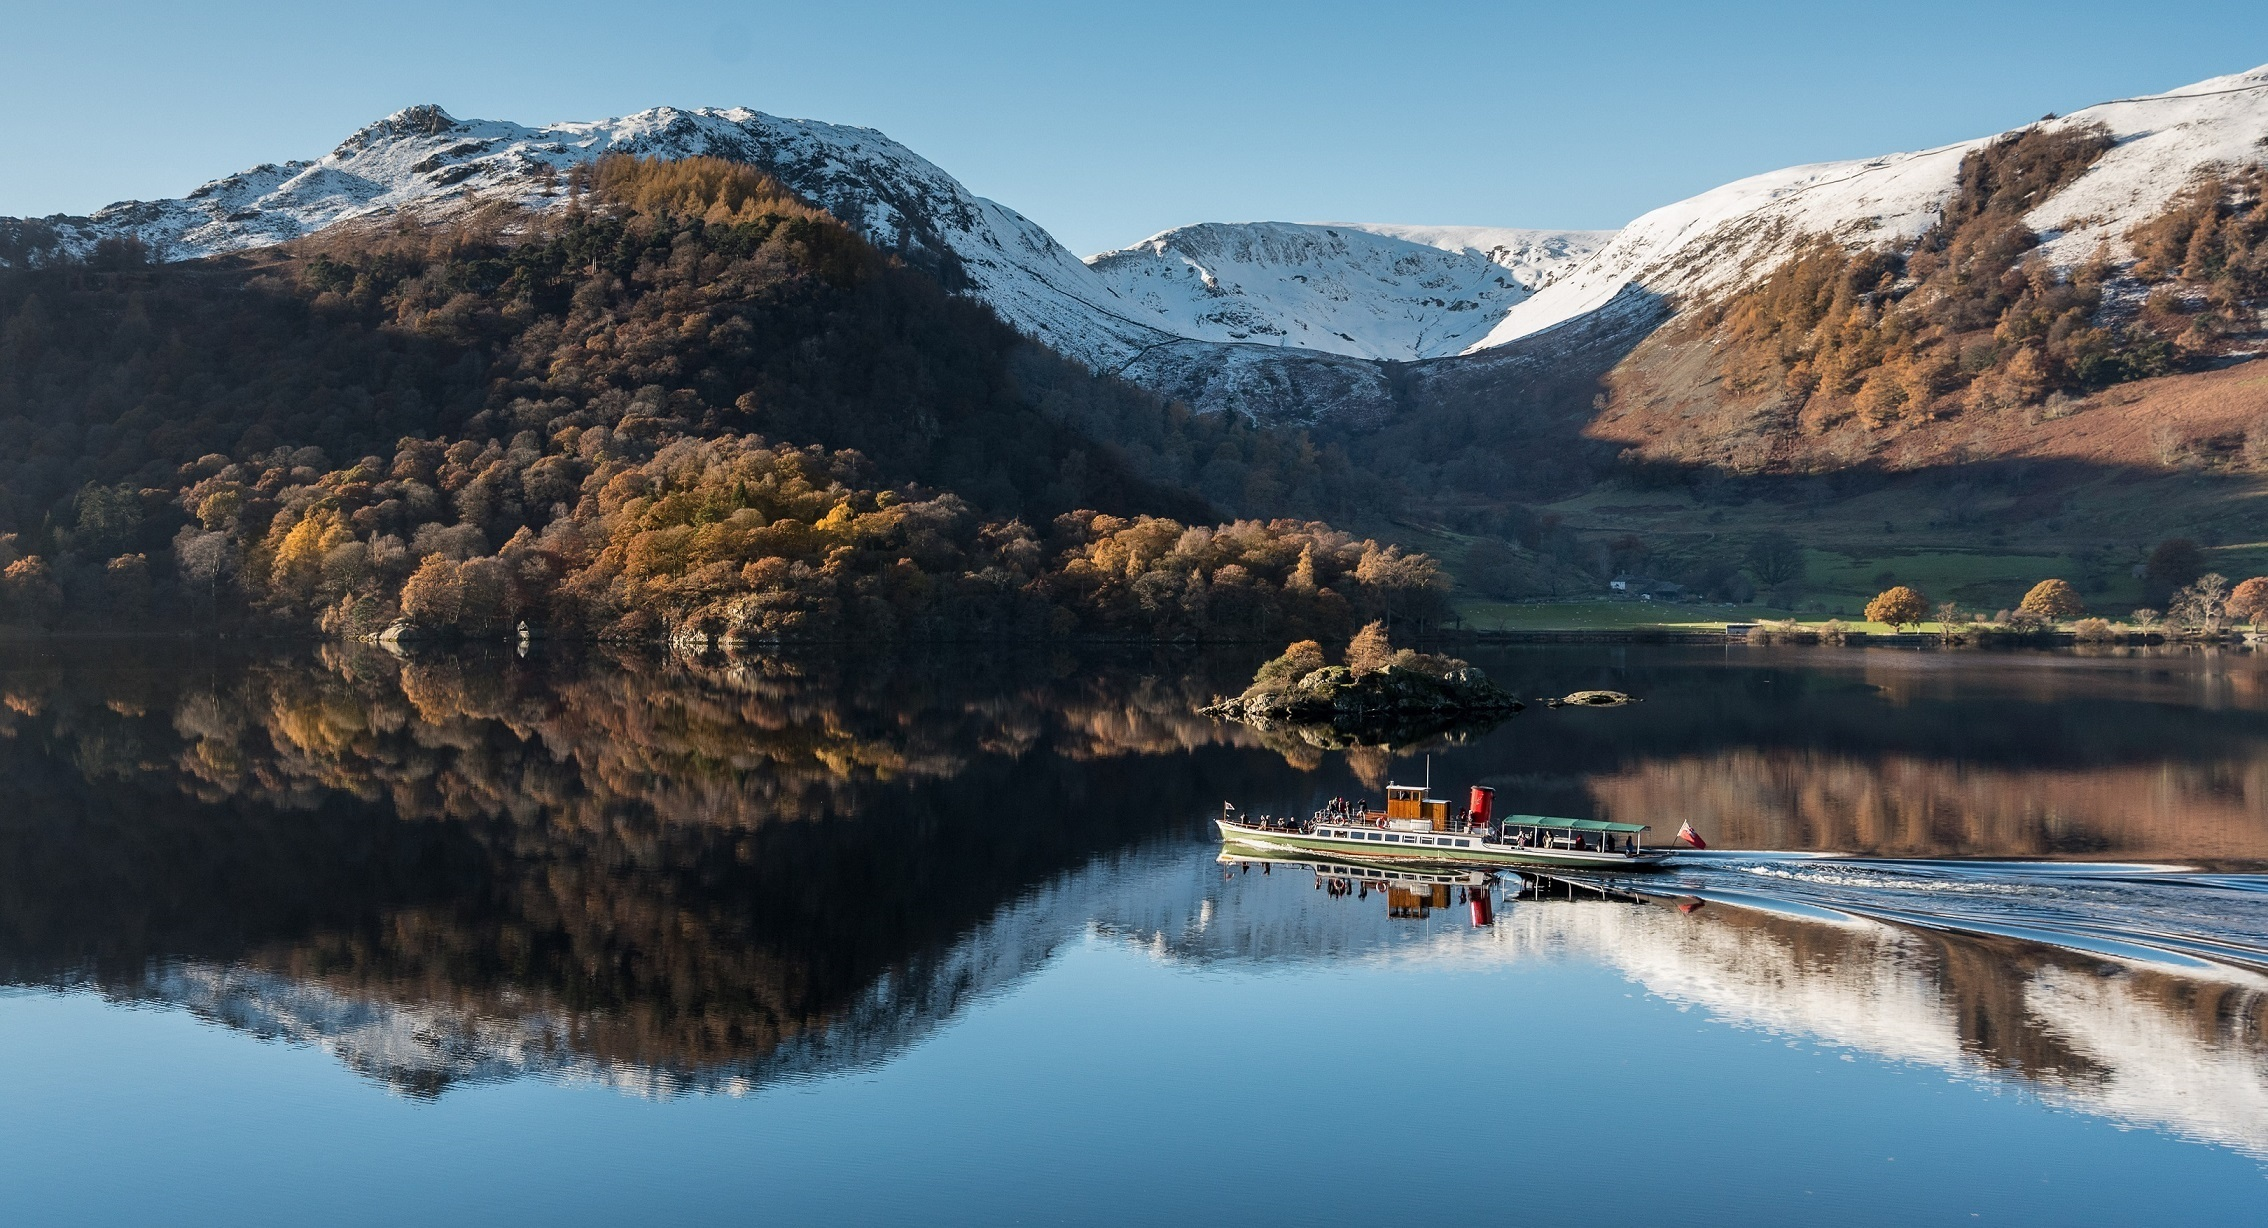 View across Ullswater towards Glenridding, taken by visitor and amateur photographer, Les Fitton.